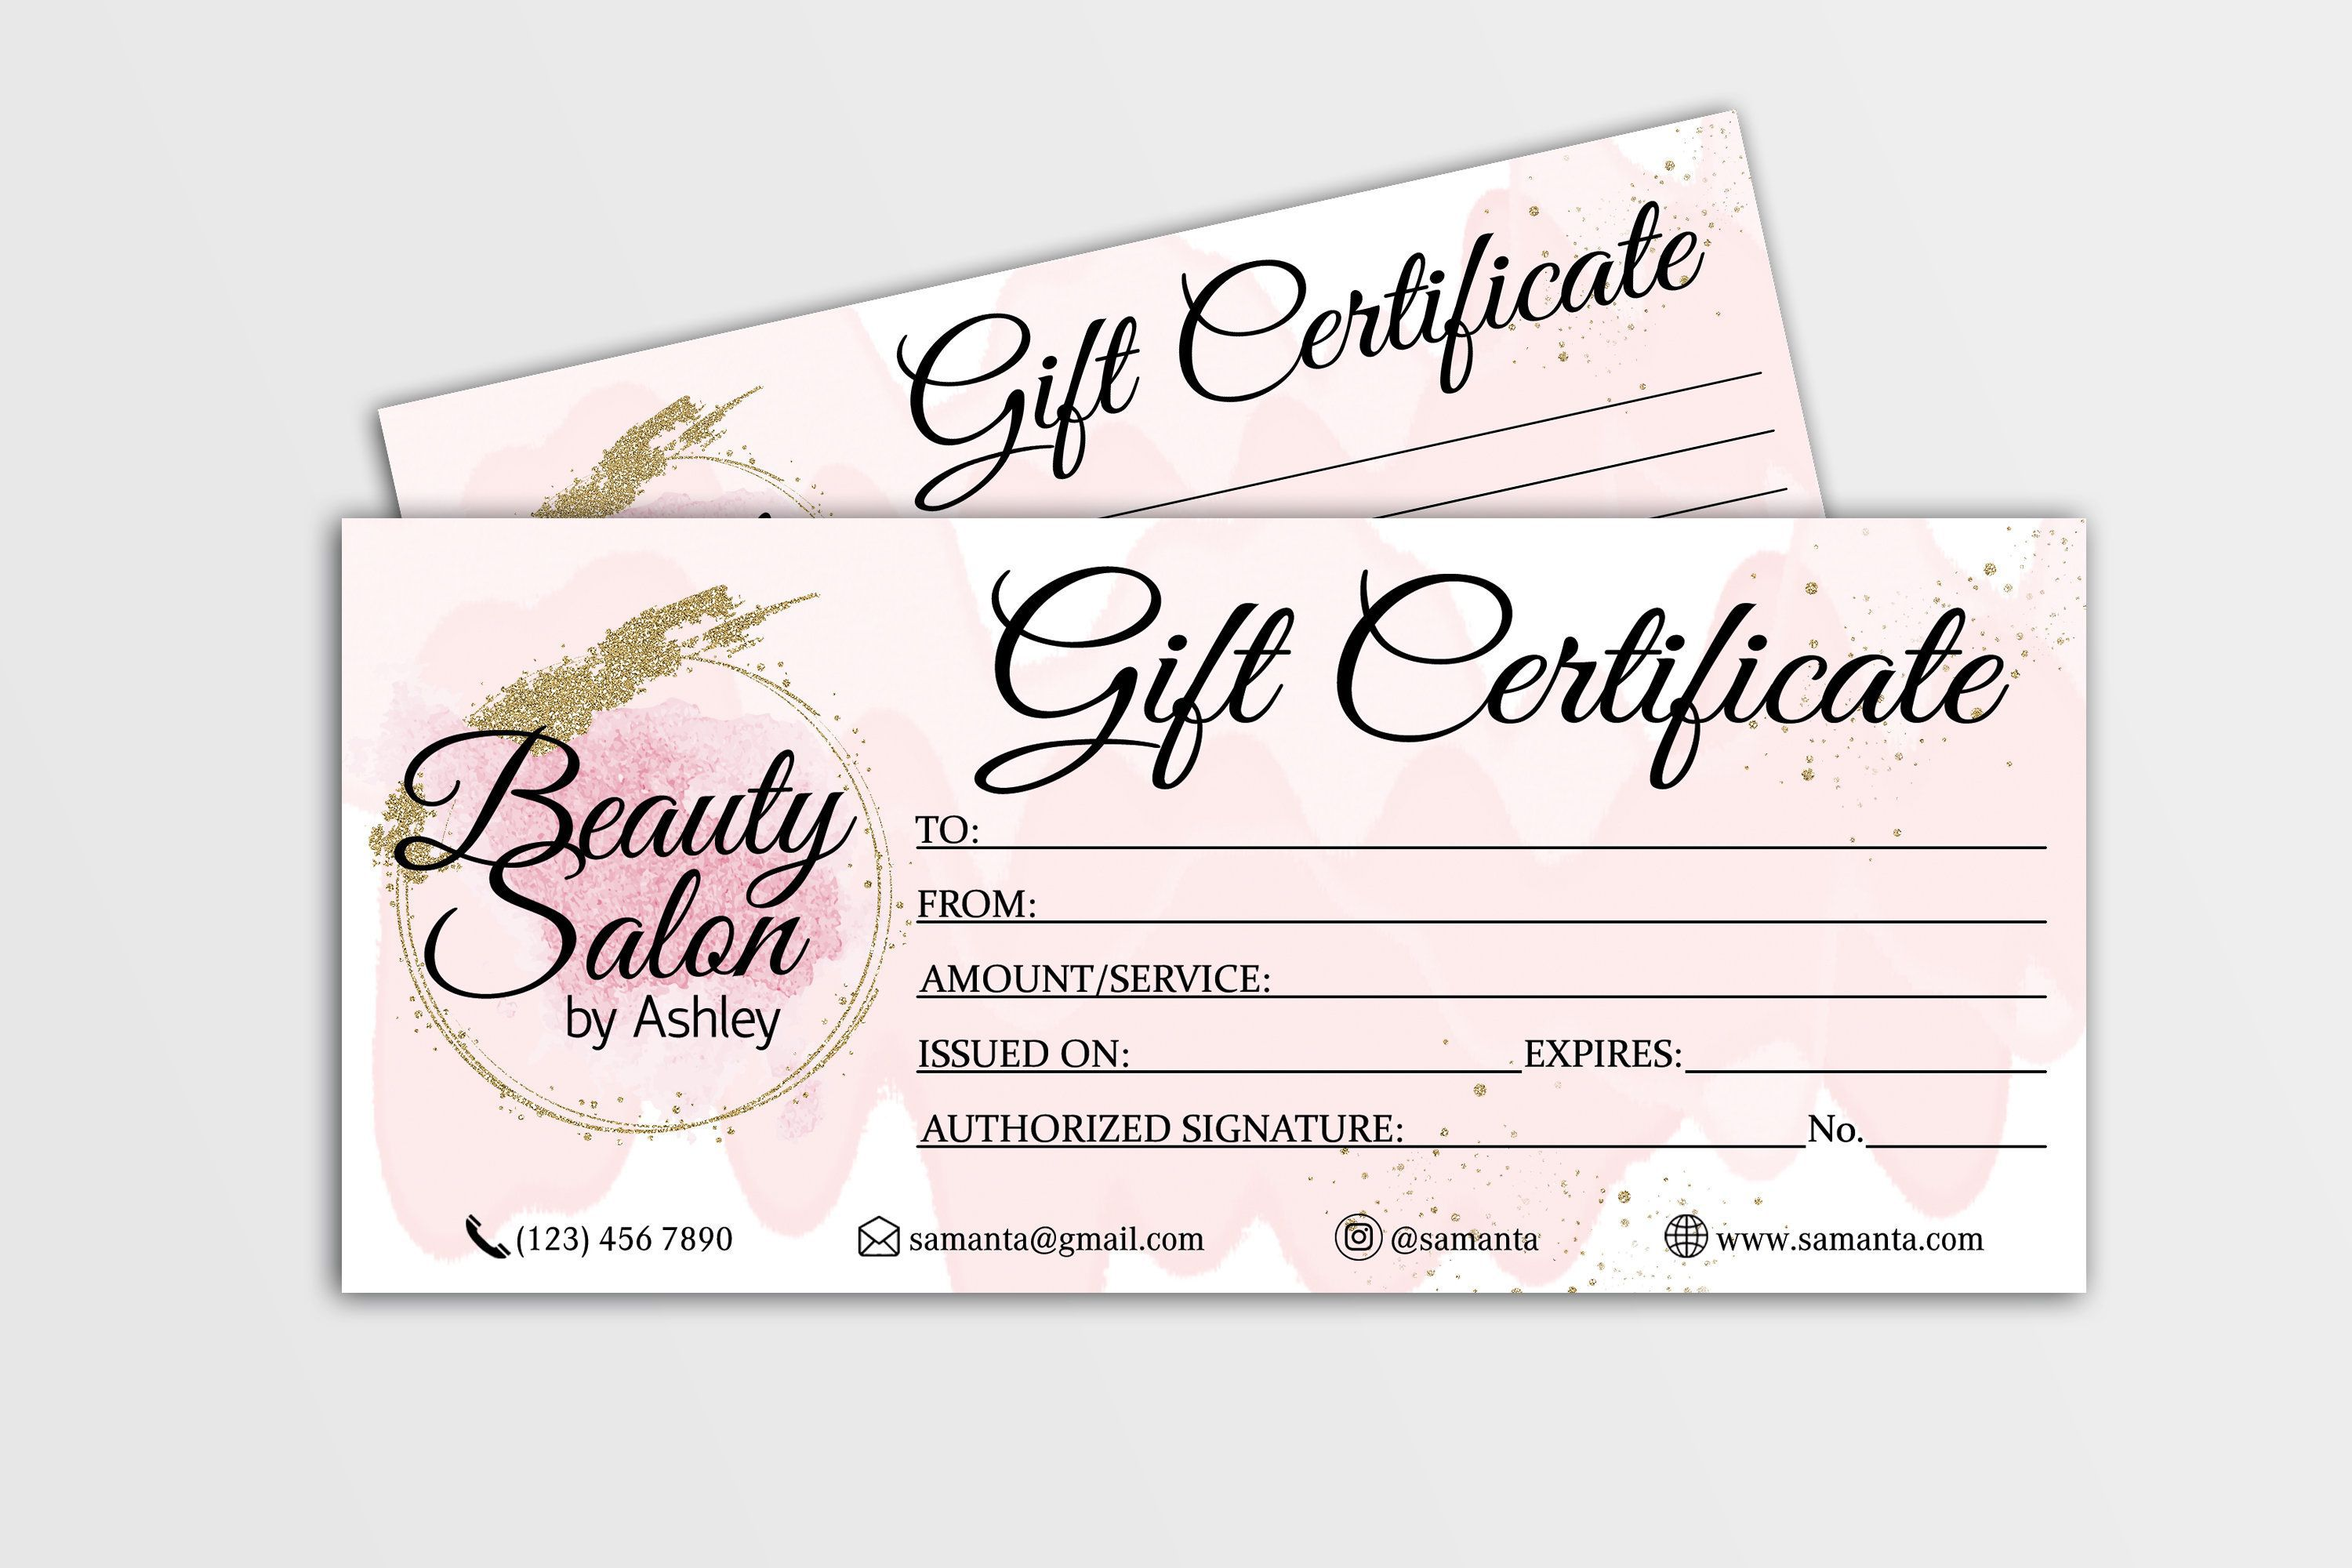 004 Fascinating Salon Gift Certificate Template Design Full